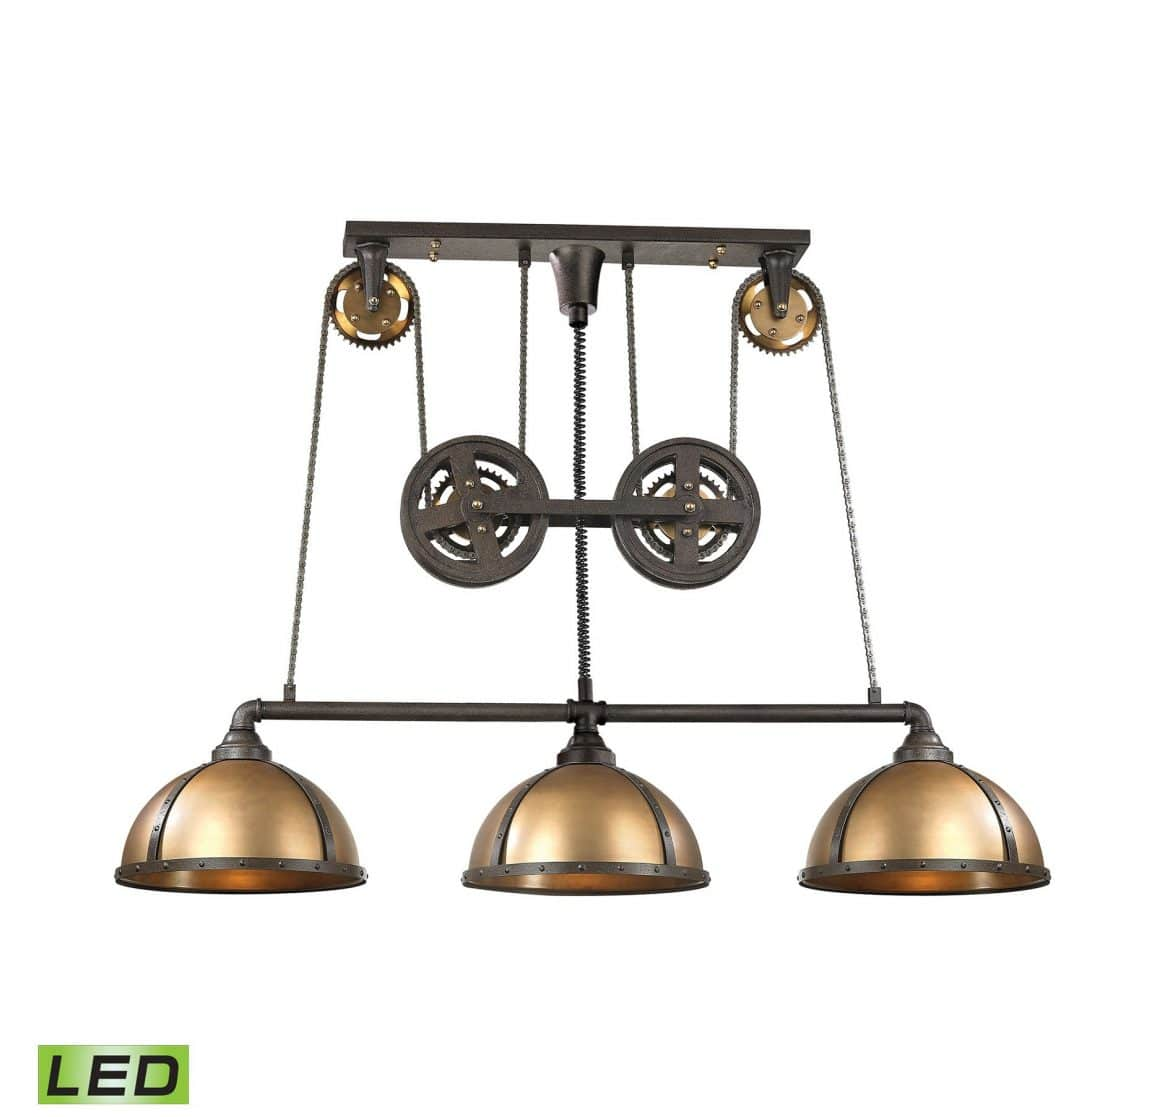 Light LED Billiard Island In Vintage Brass